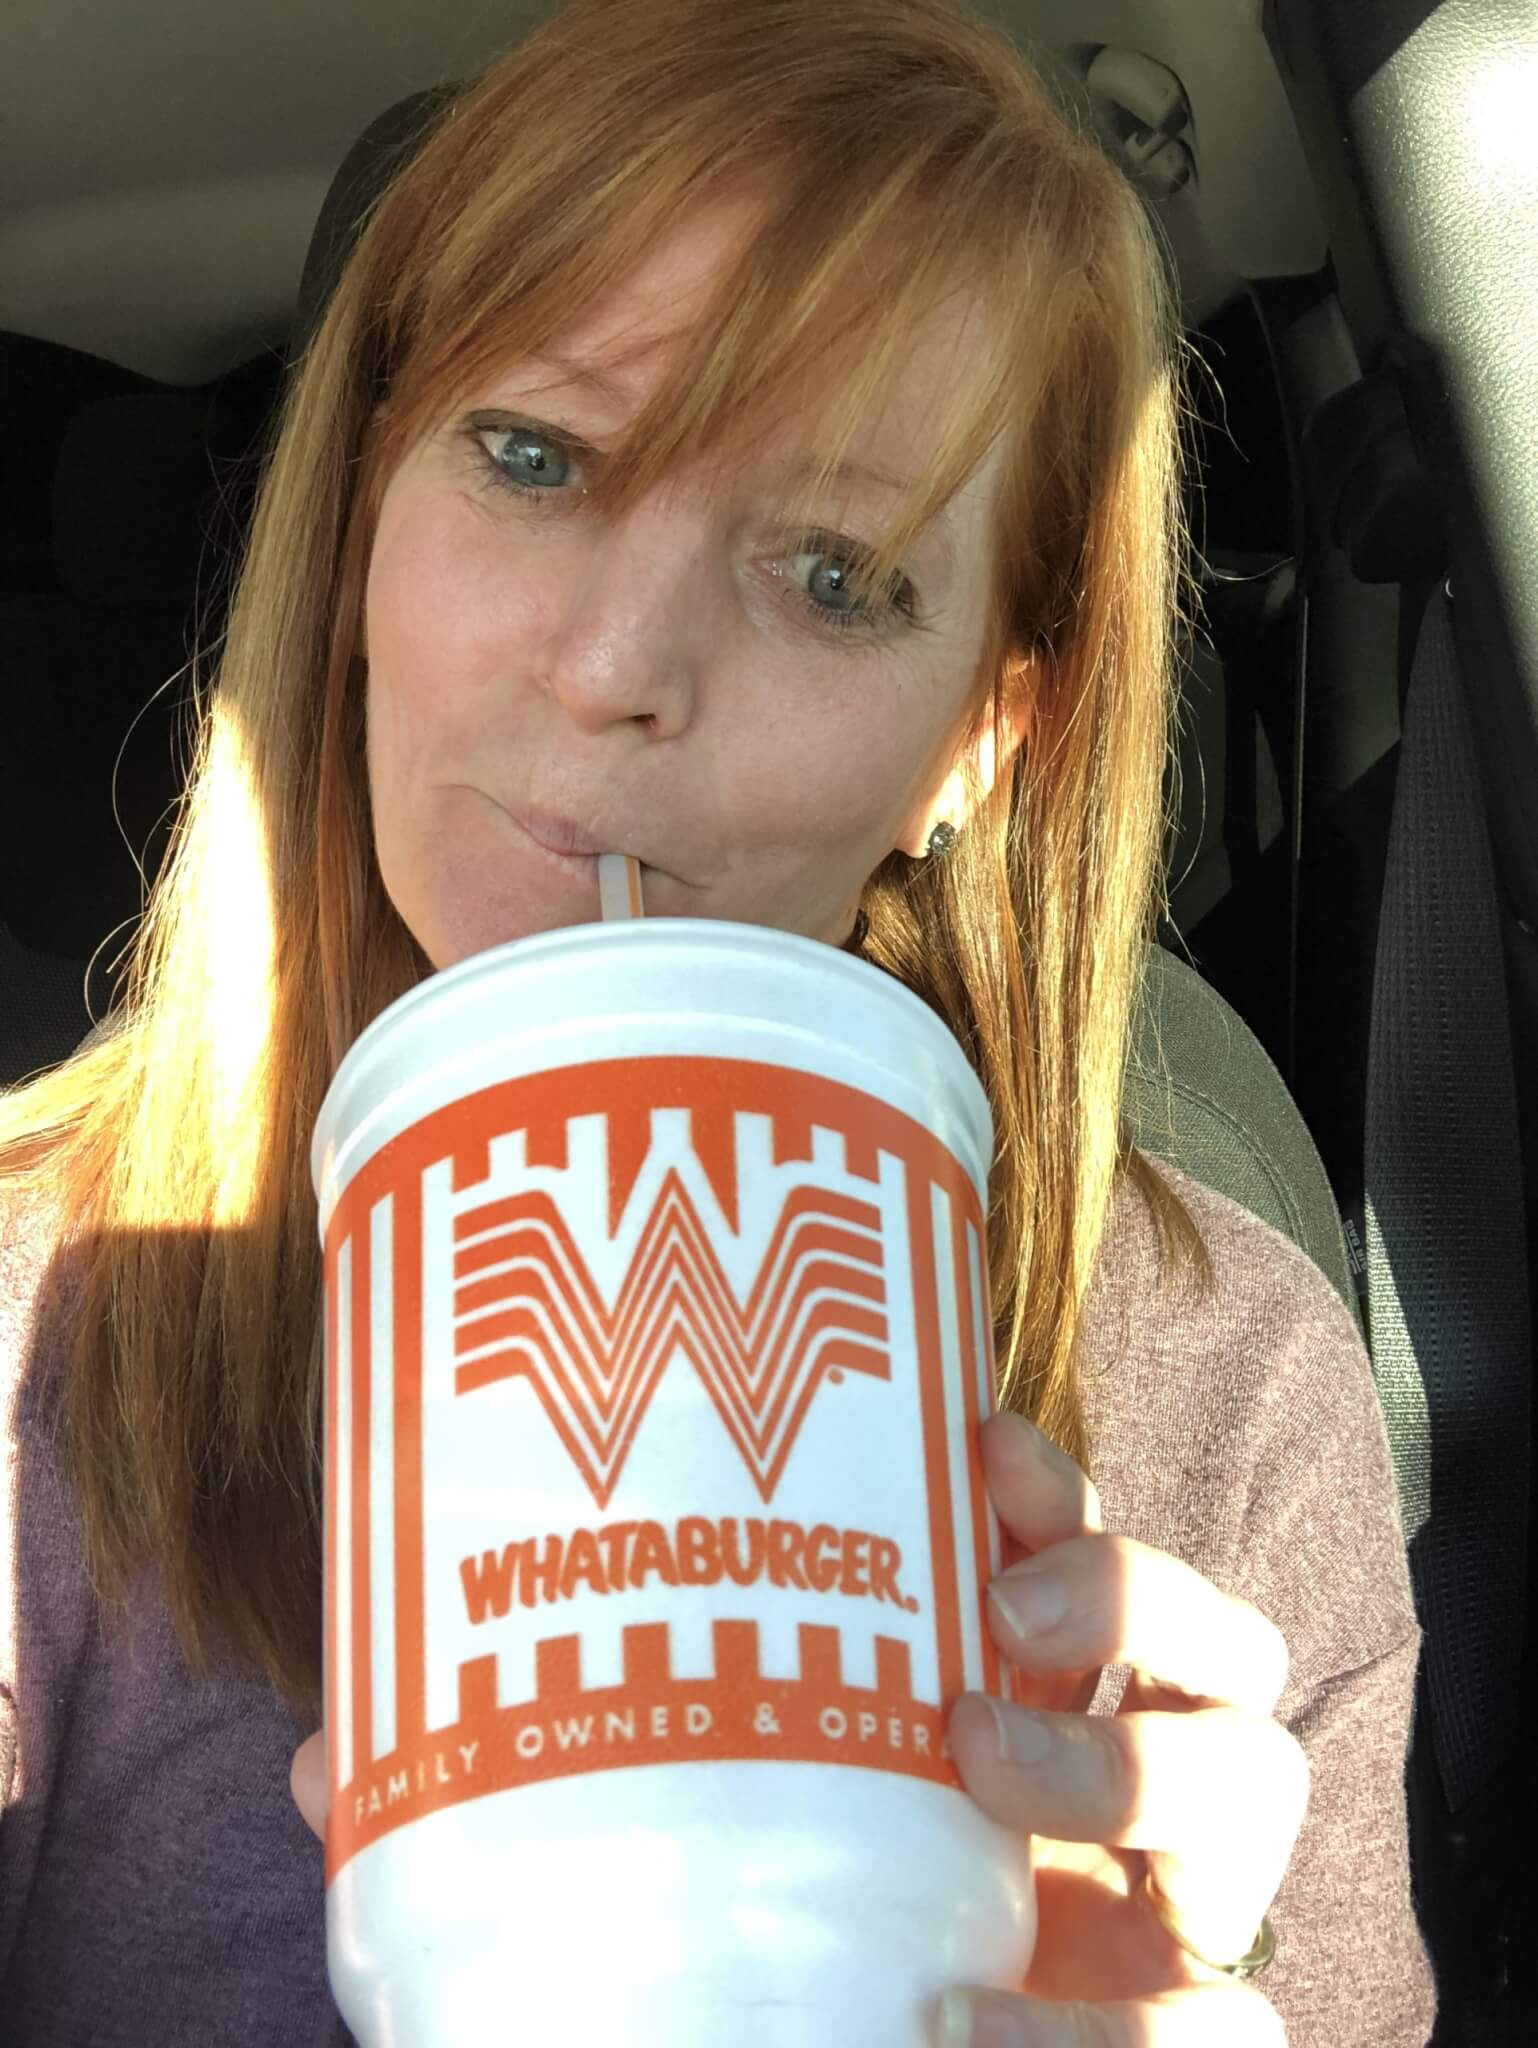 Drinking Whataburger coke - conquer cravings